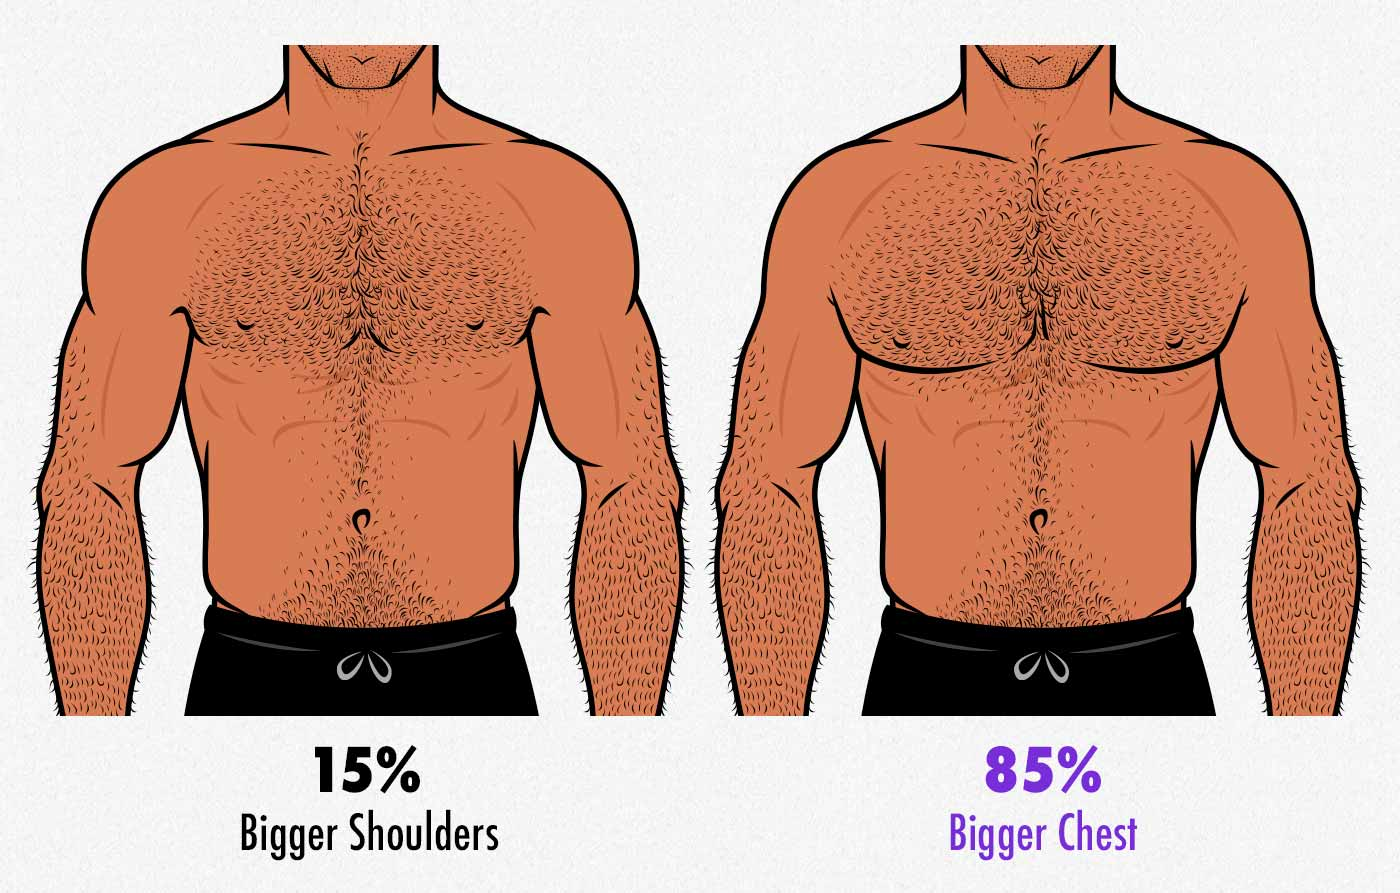 Survey results showing that gay men find men with bigger chests more attractive.